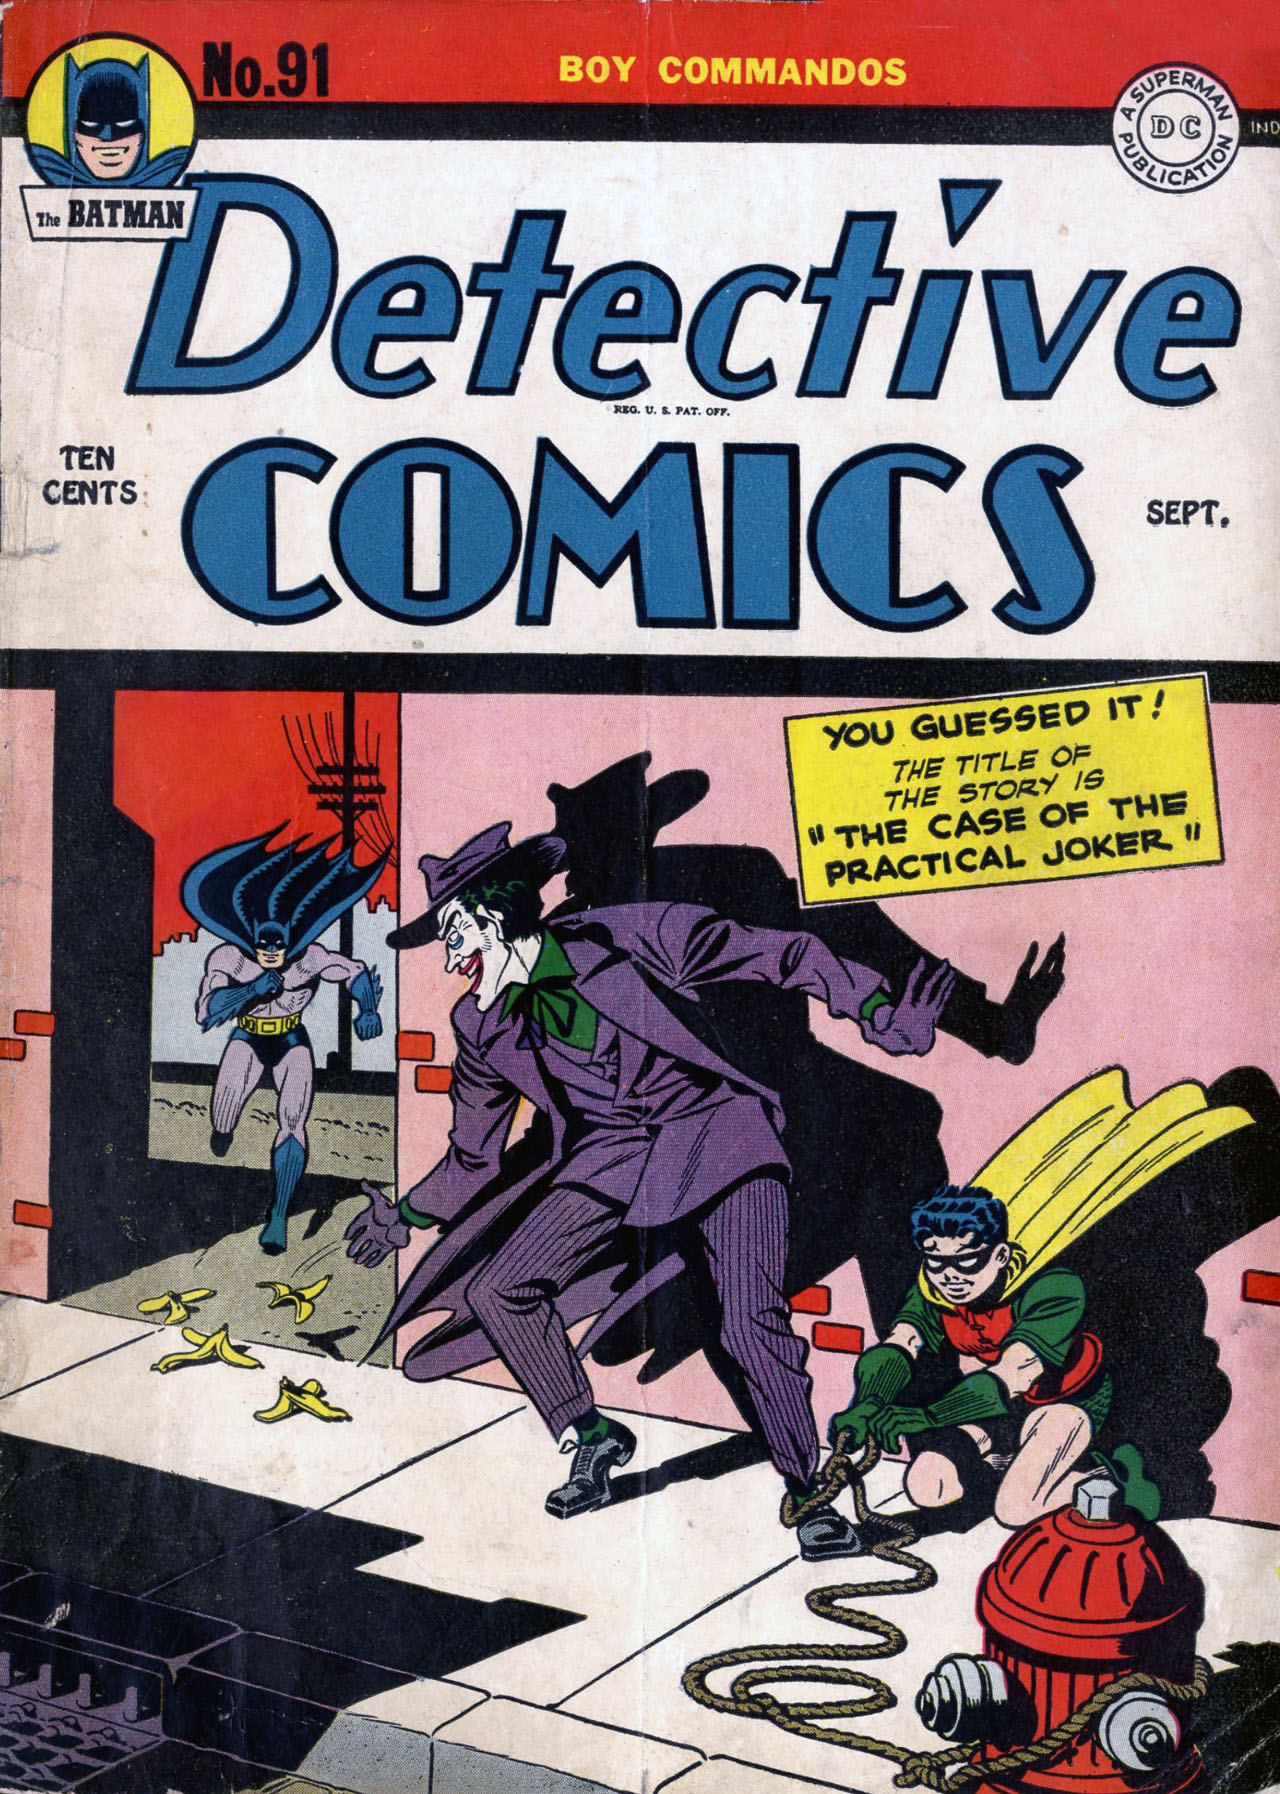 Read online Detective Comics (1937) comic -  Issue #91 - 1